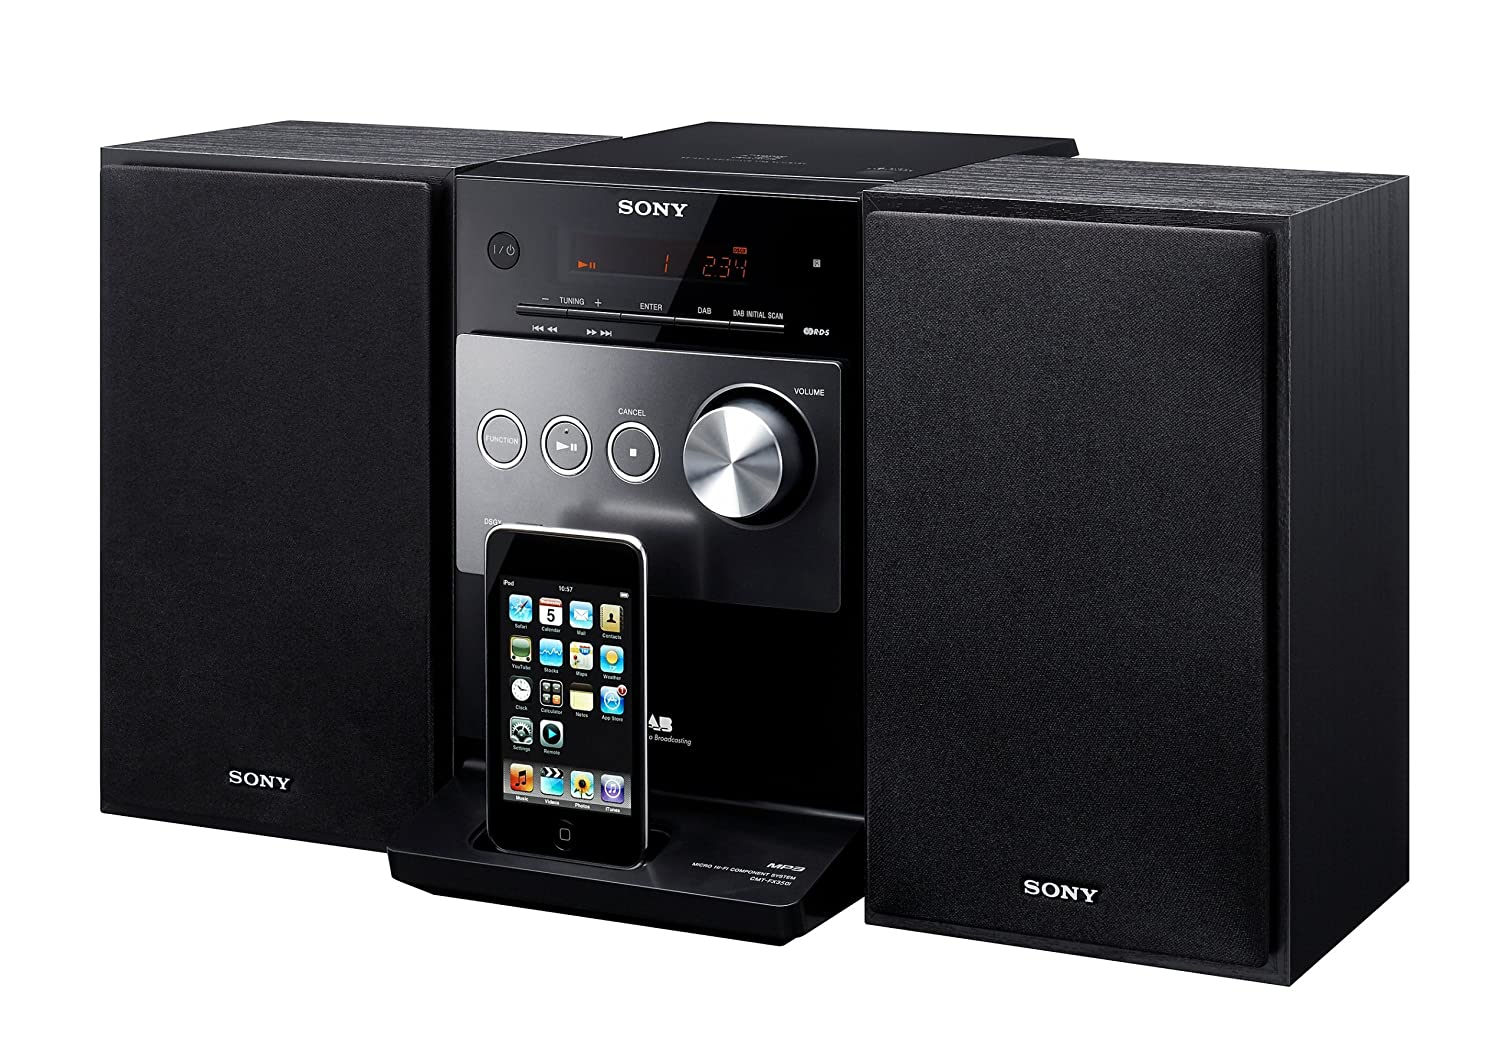 sony cmtfx300 ipod docking micro system hifi light scratches ebay. Black Bedroom Furniture Sets. Home Design Ideas